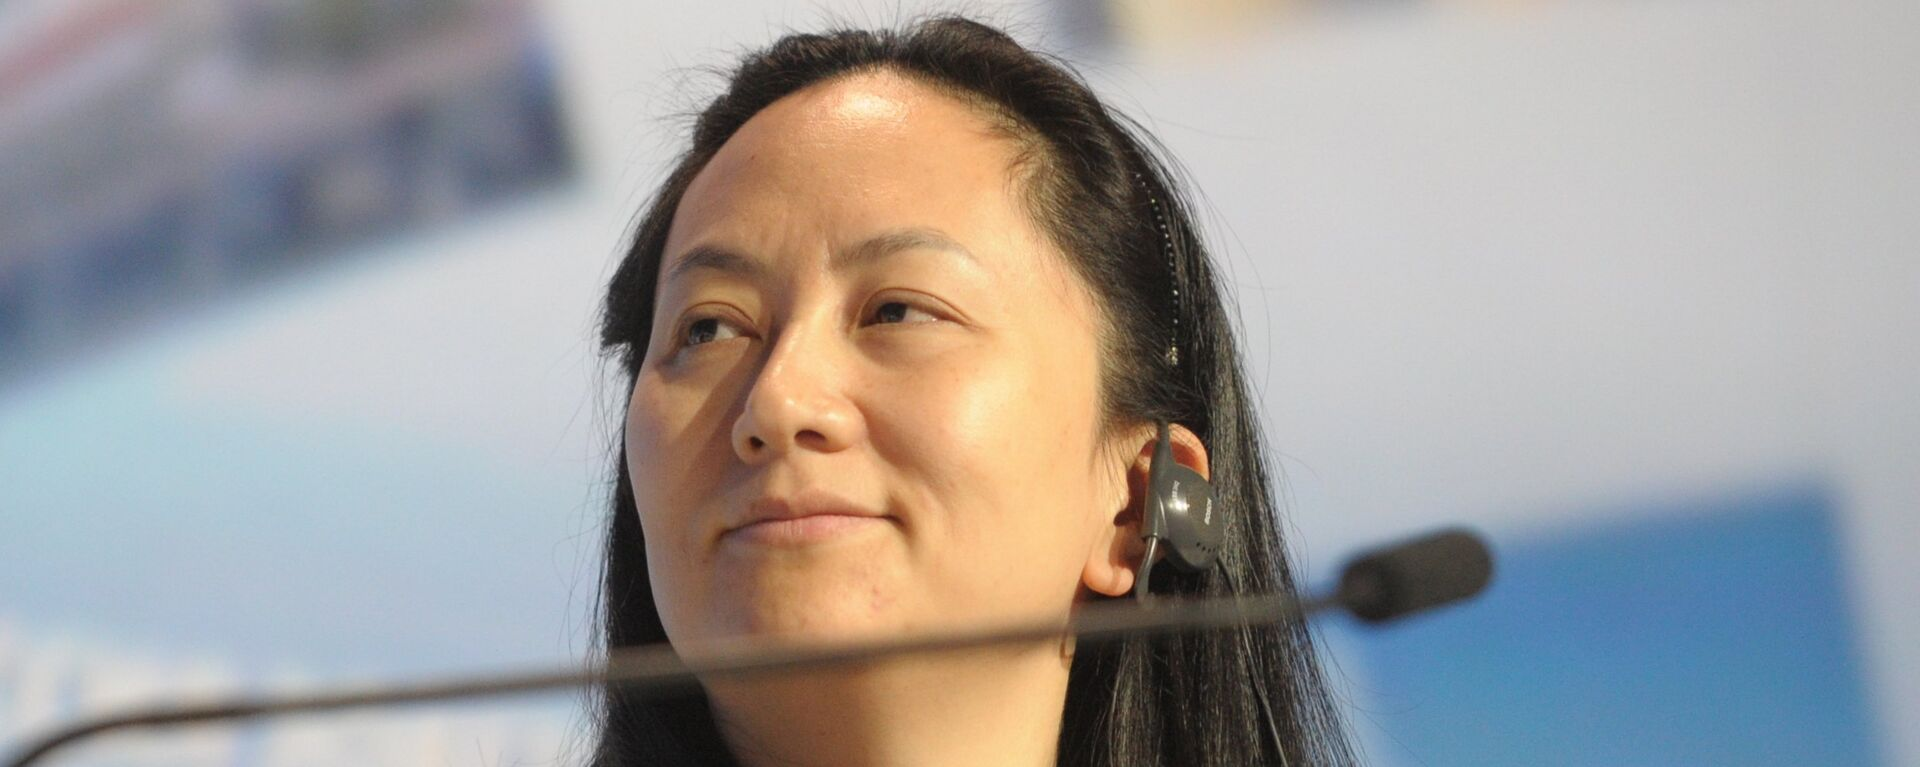 Meng Wanzhou, Chief Executive Officer, Huawei Technologies, attending the 6th Annual VTB Capital Investment Forum Russia Calling at the World Trade Center, October 2, 2014 - Sputnik Italia, 1920, 24.09.2021